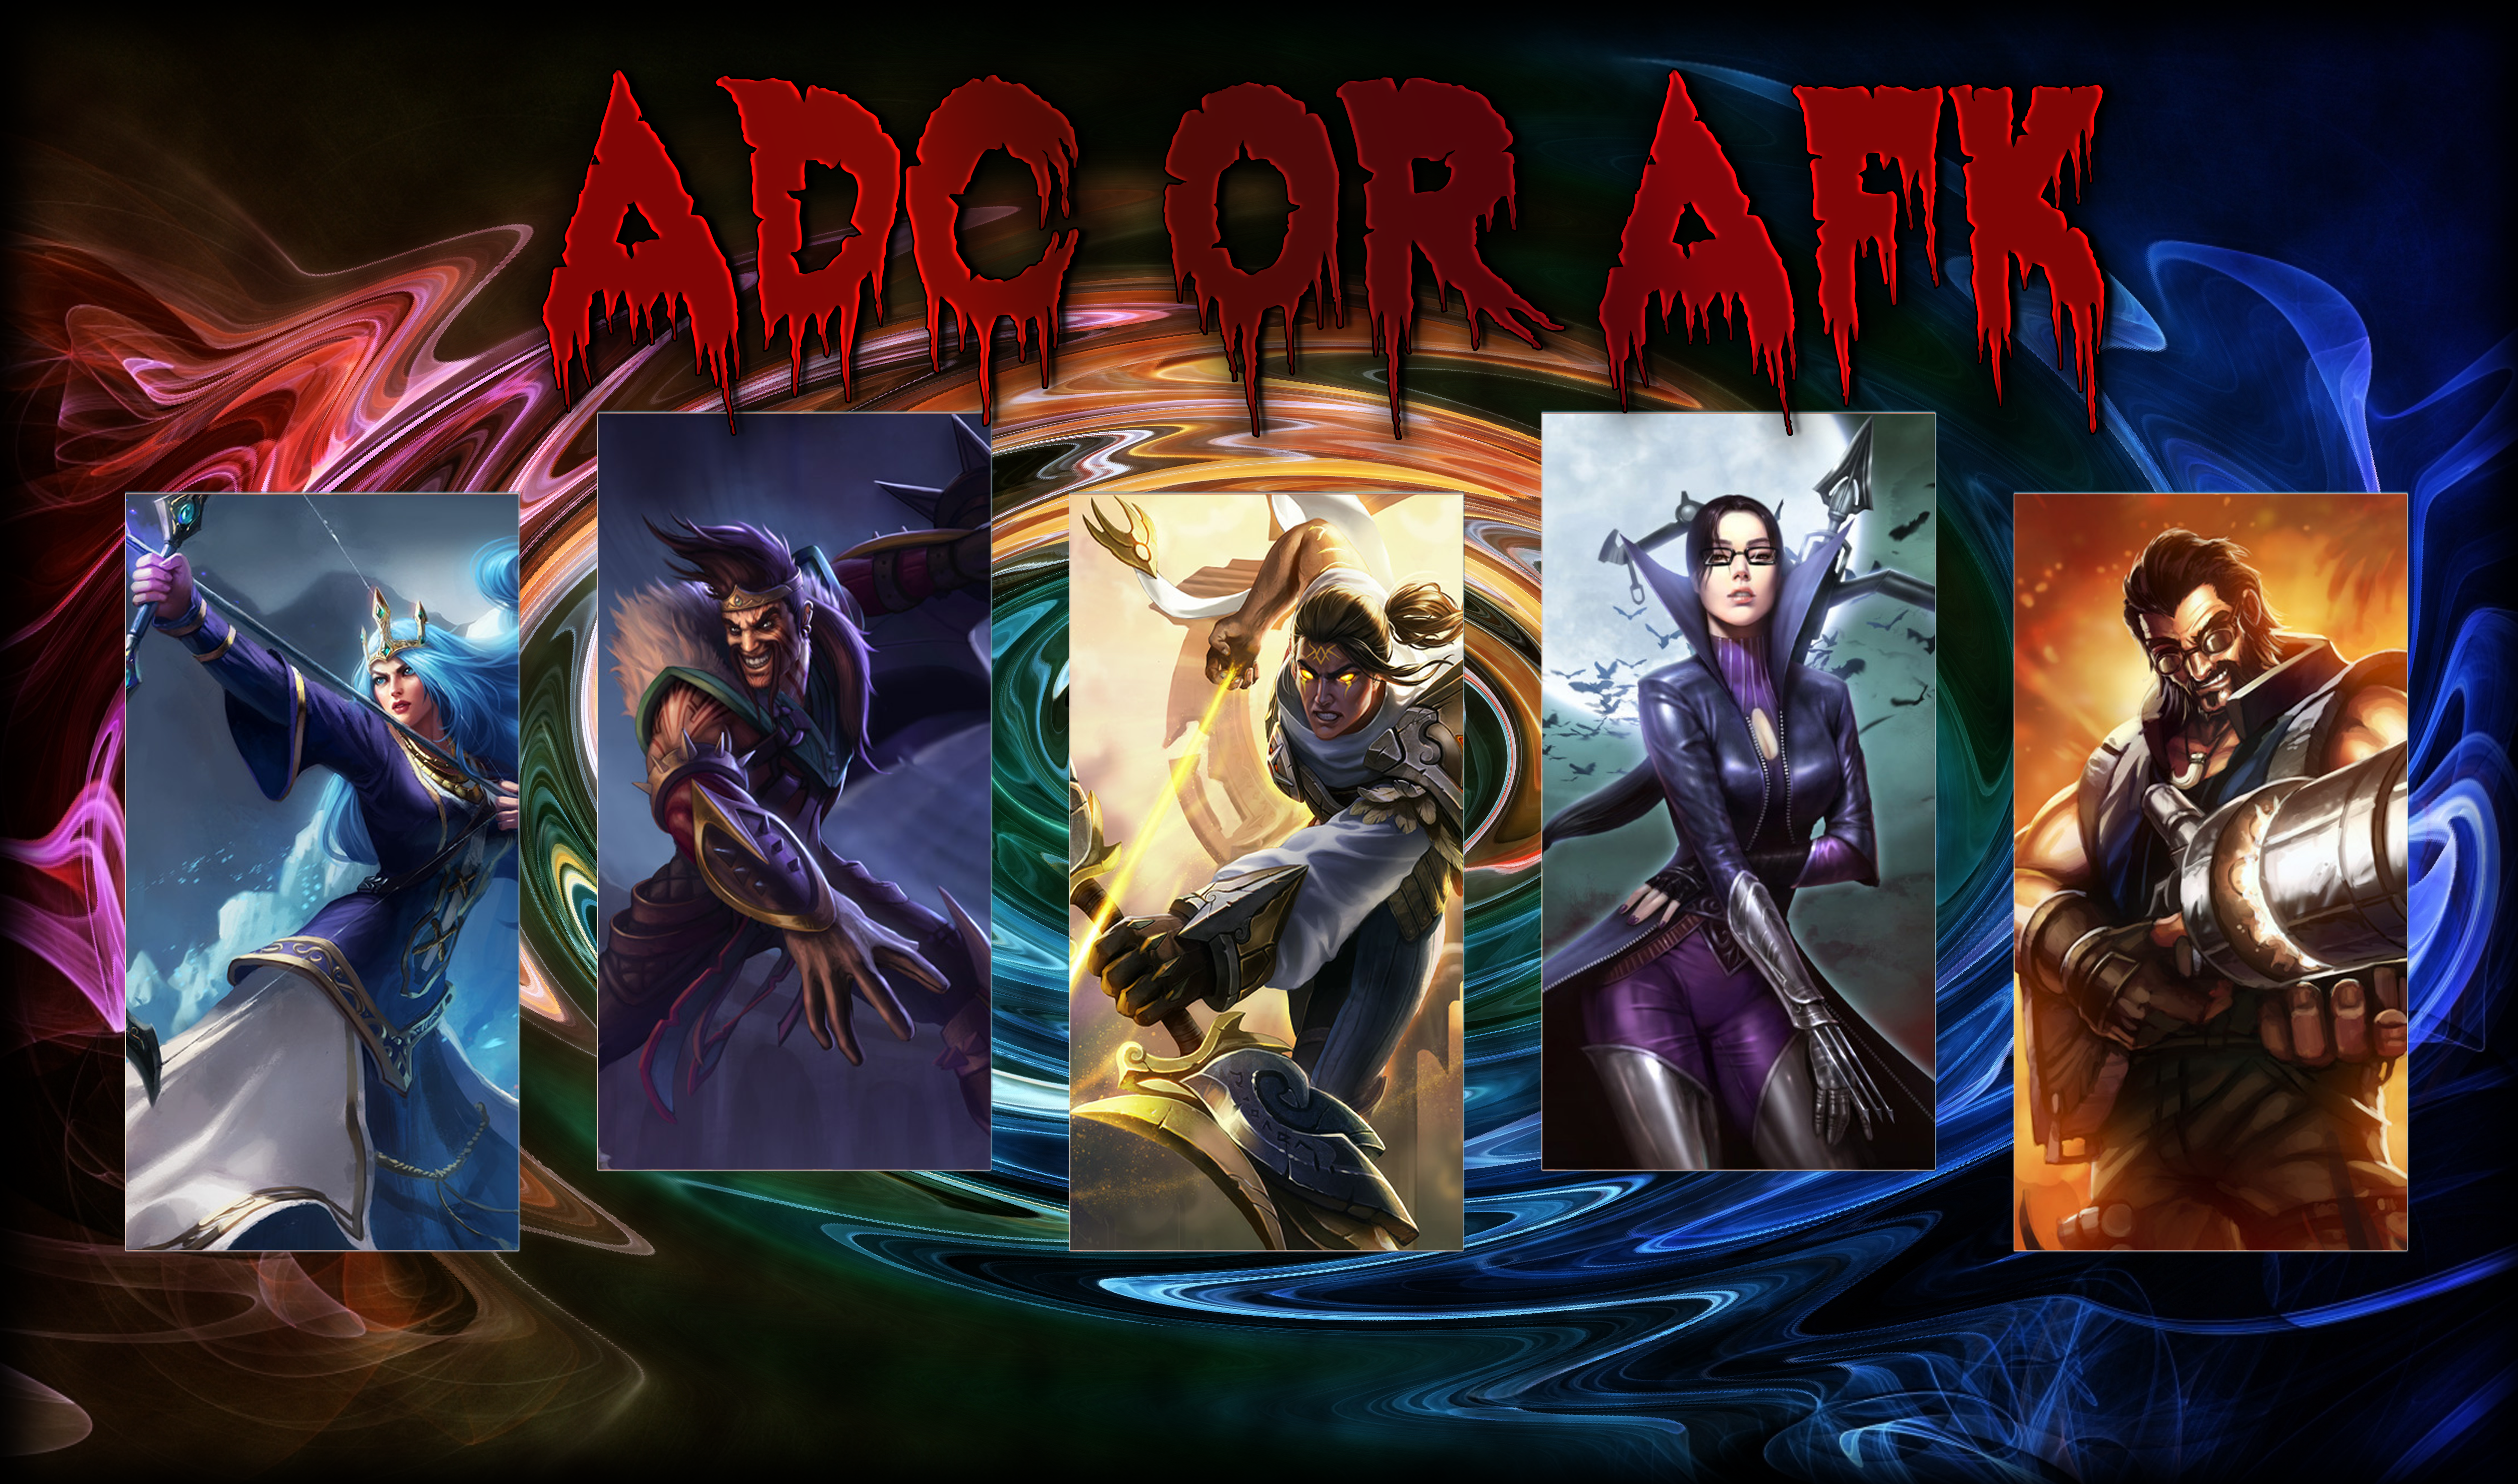 adc_or_afk_by_molotovcoctail-d6my6pf (1)